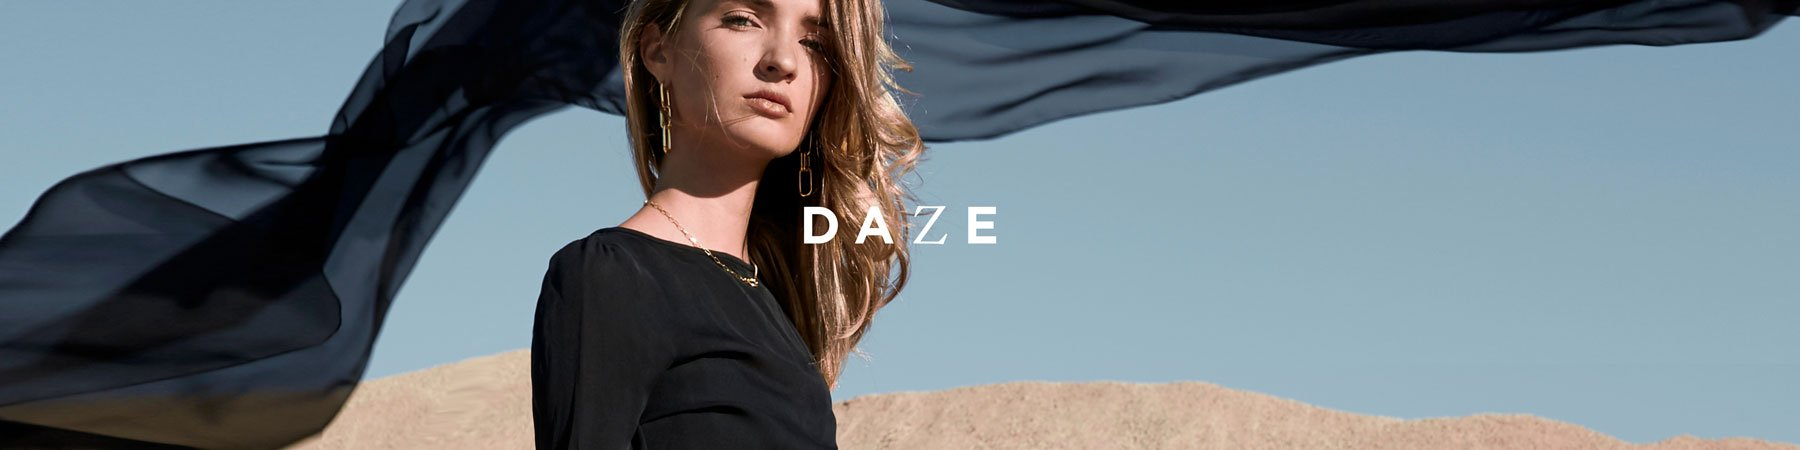 Daze Collection